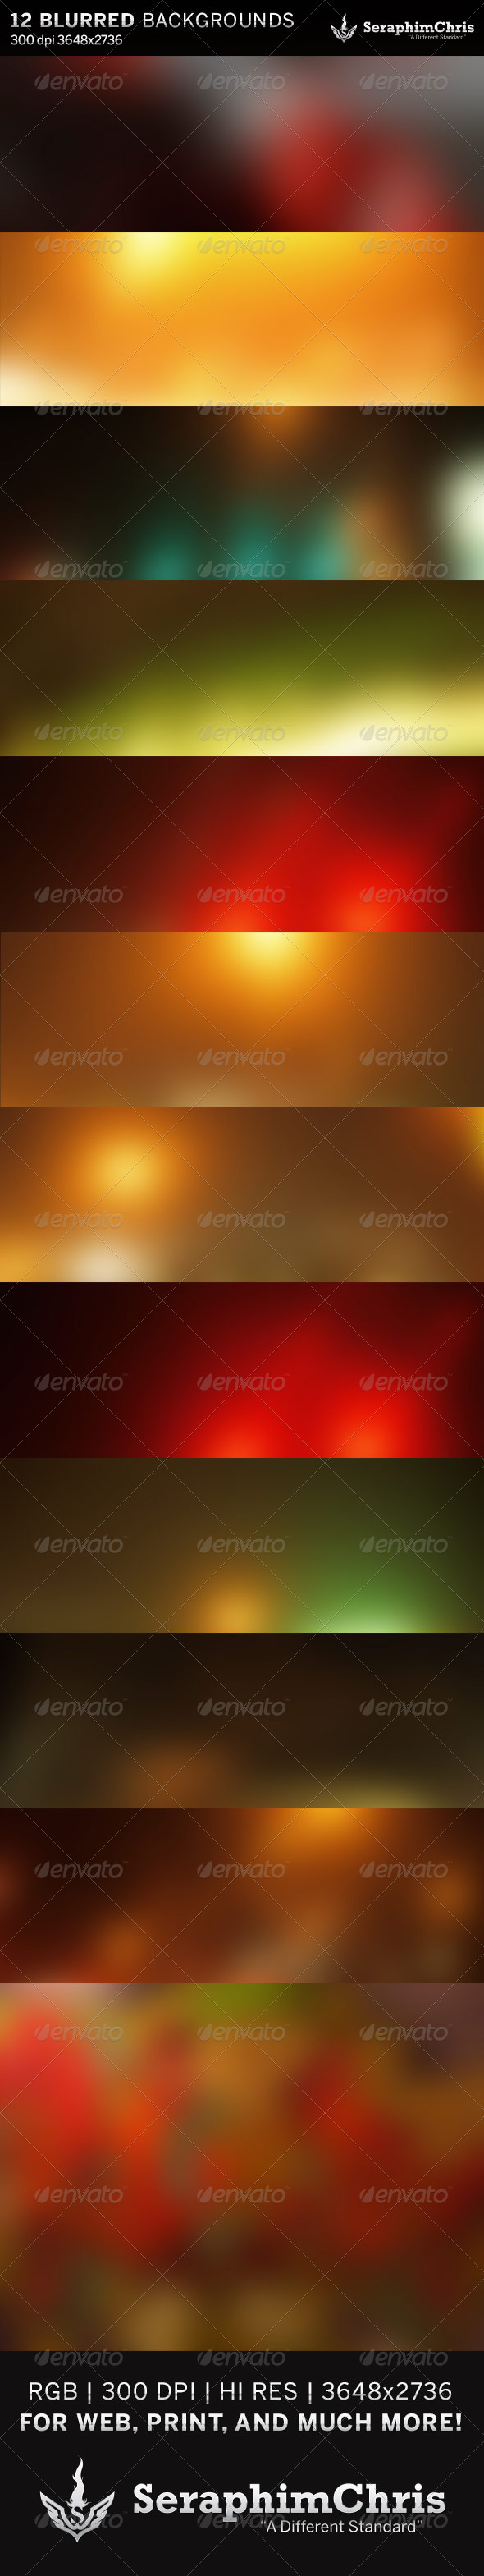 12 Abstract Blurred HD Backgrounds - Backgrounds Graphics